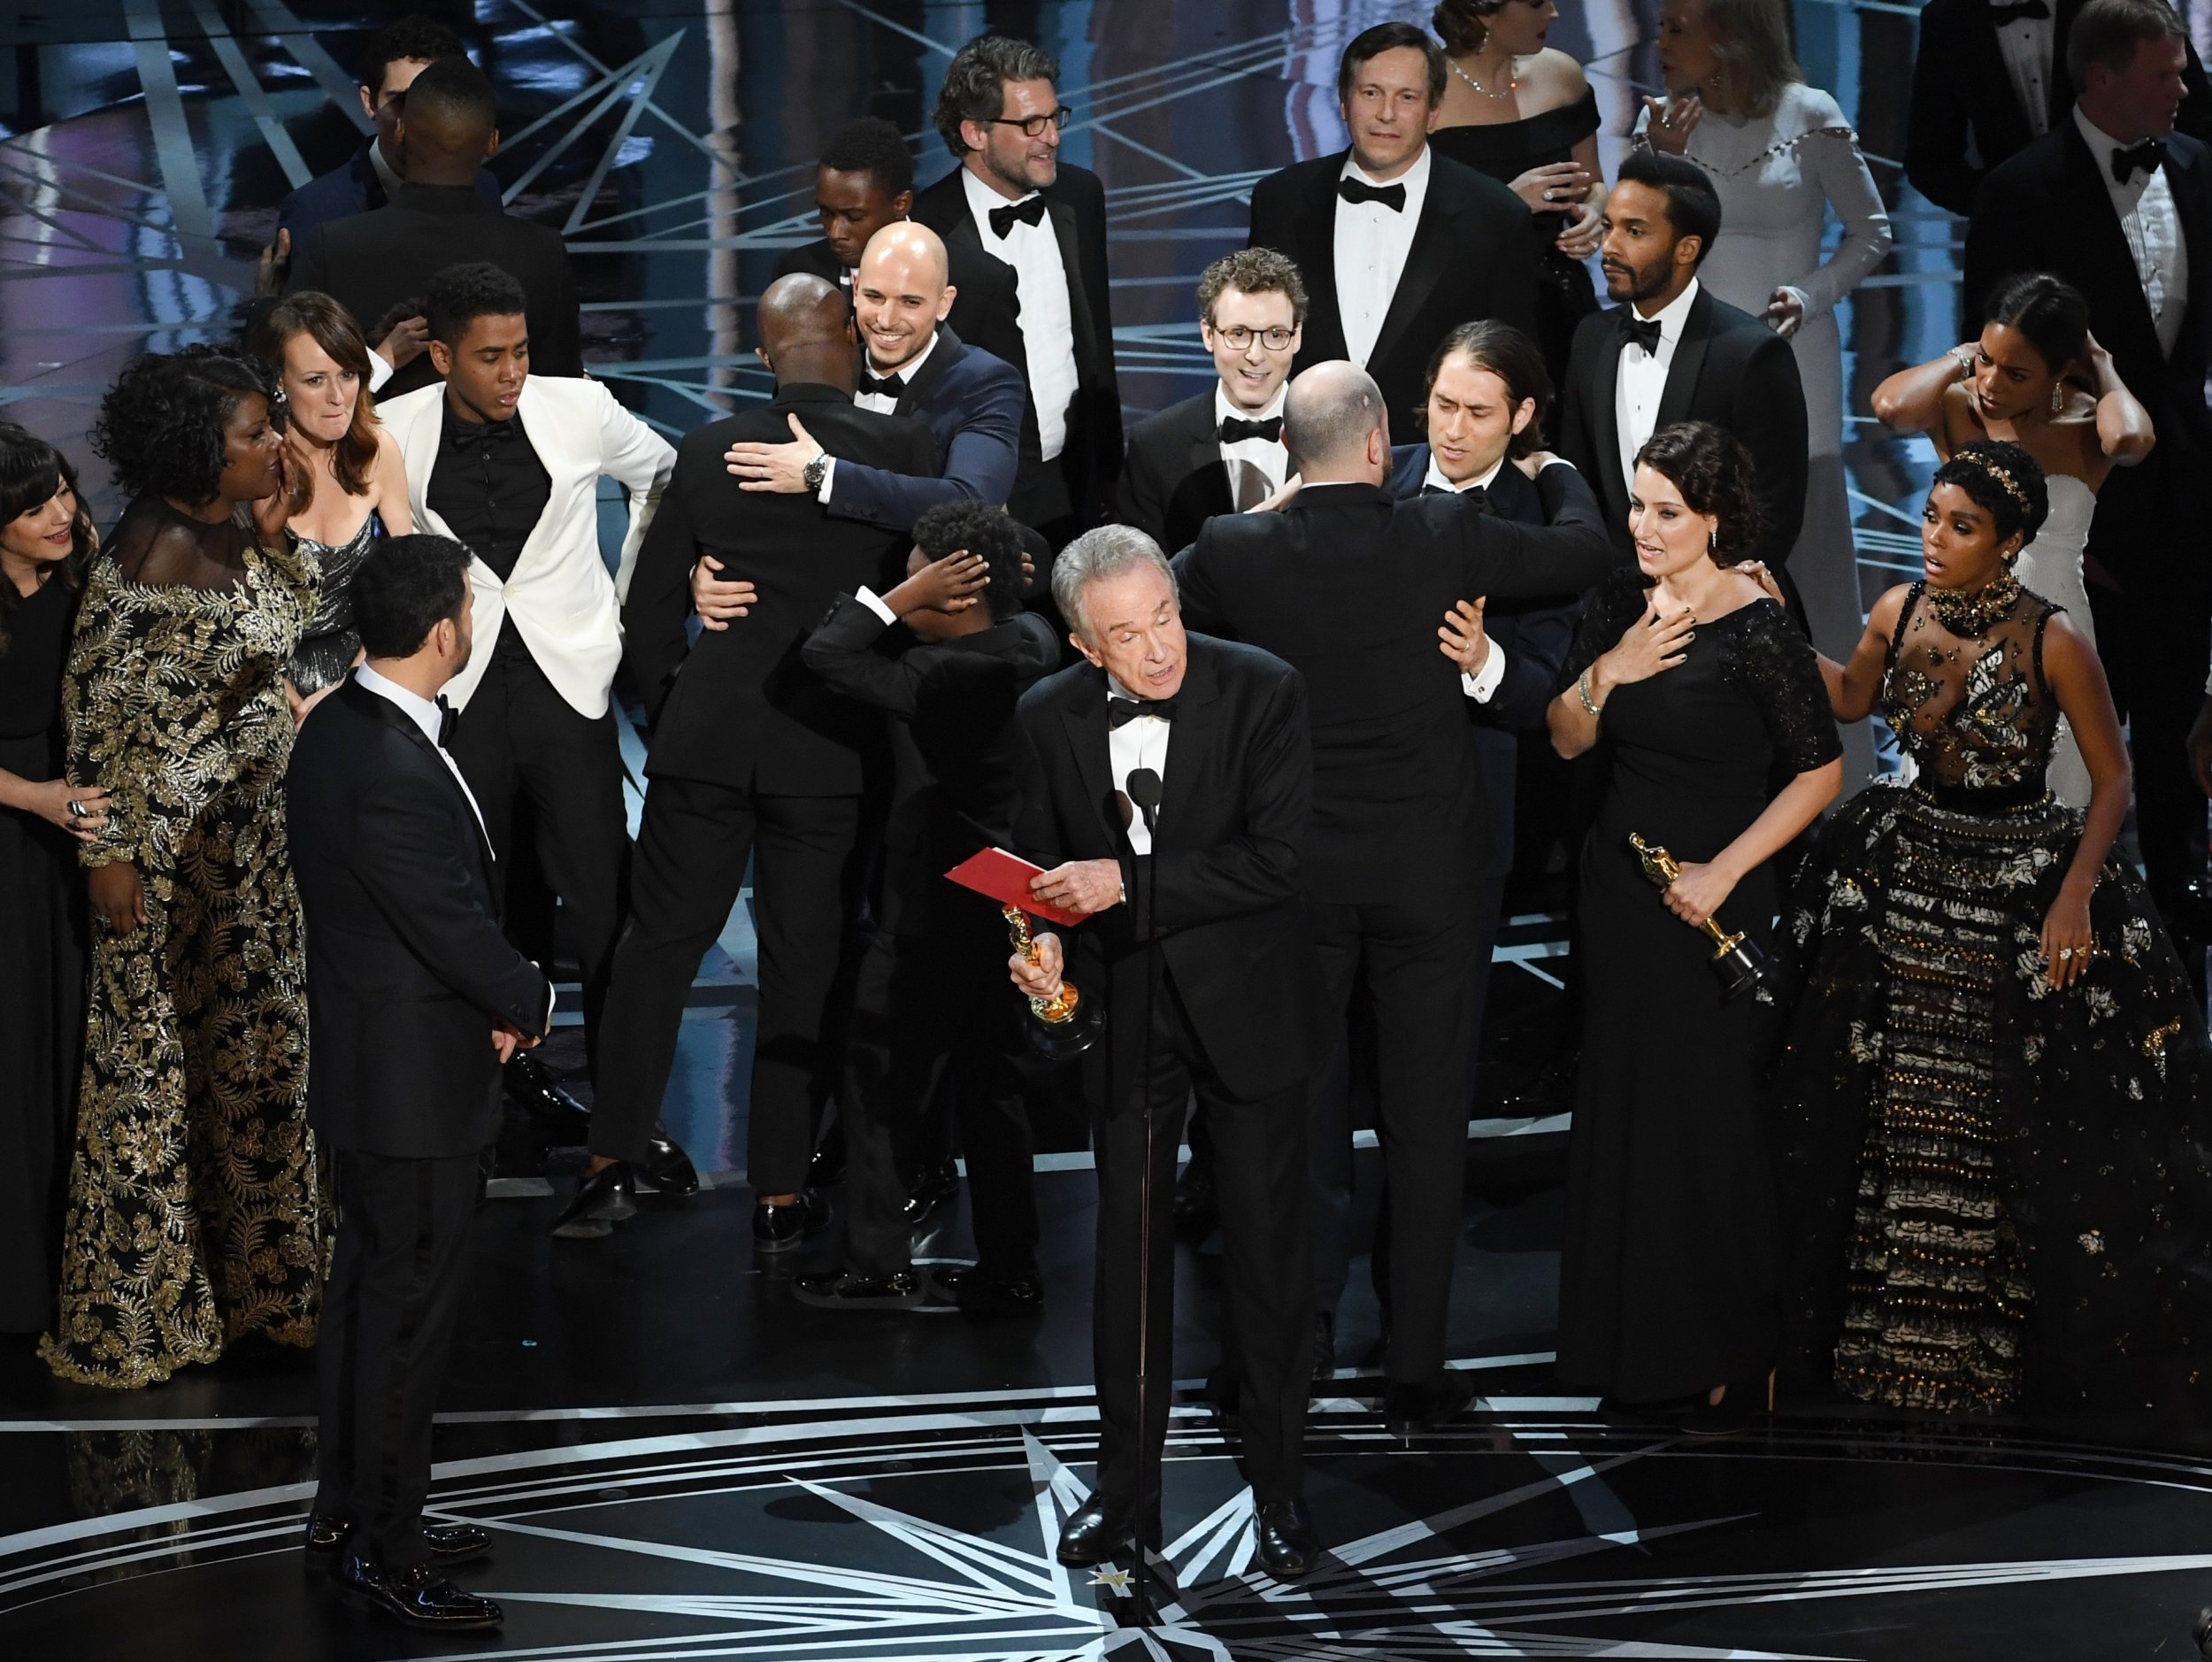 Oscars - Warren Beatty announces wrong best picture